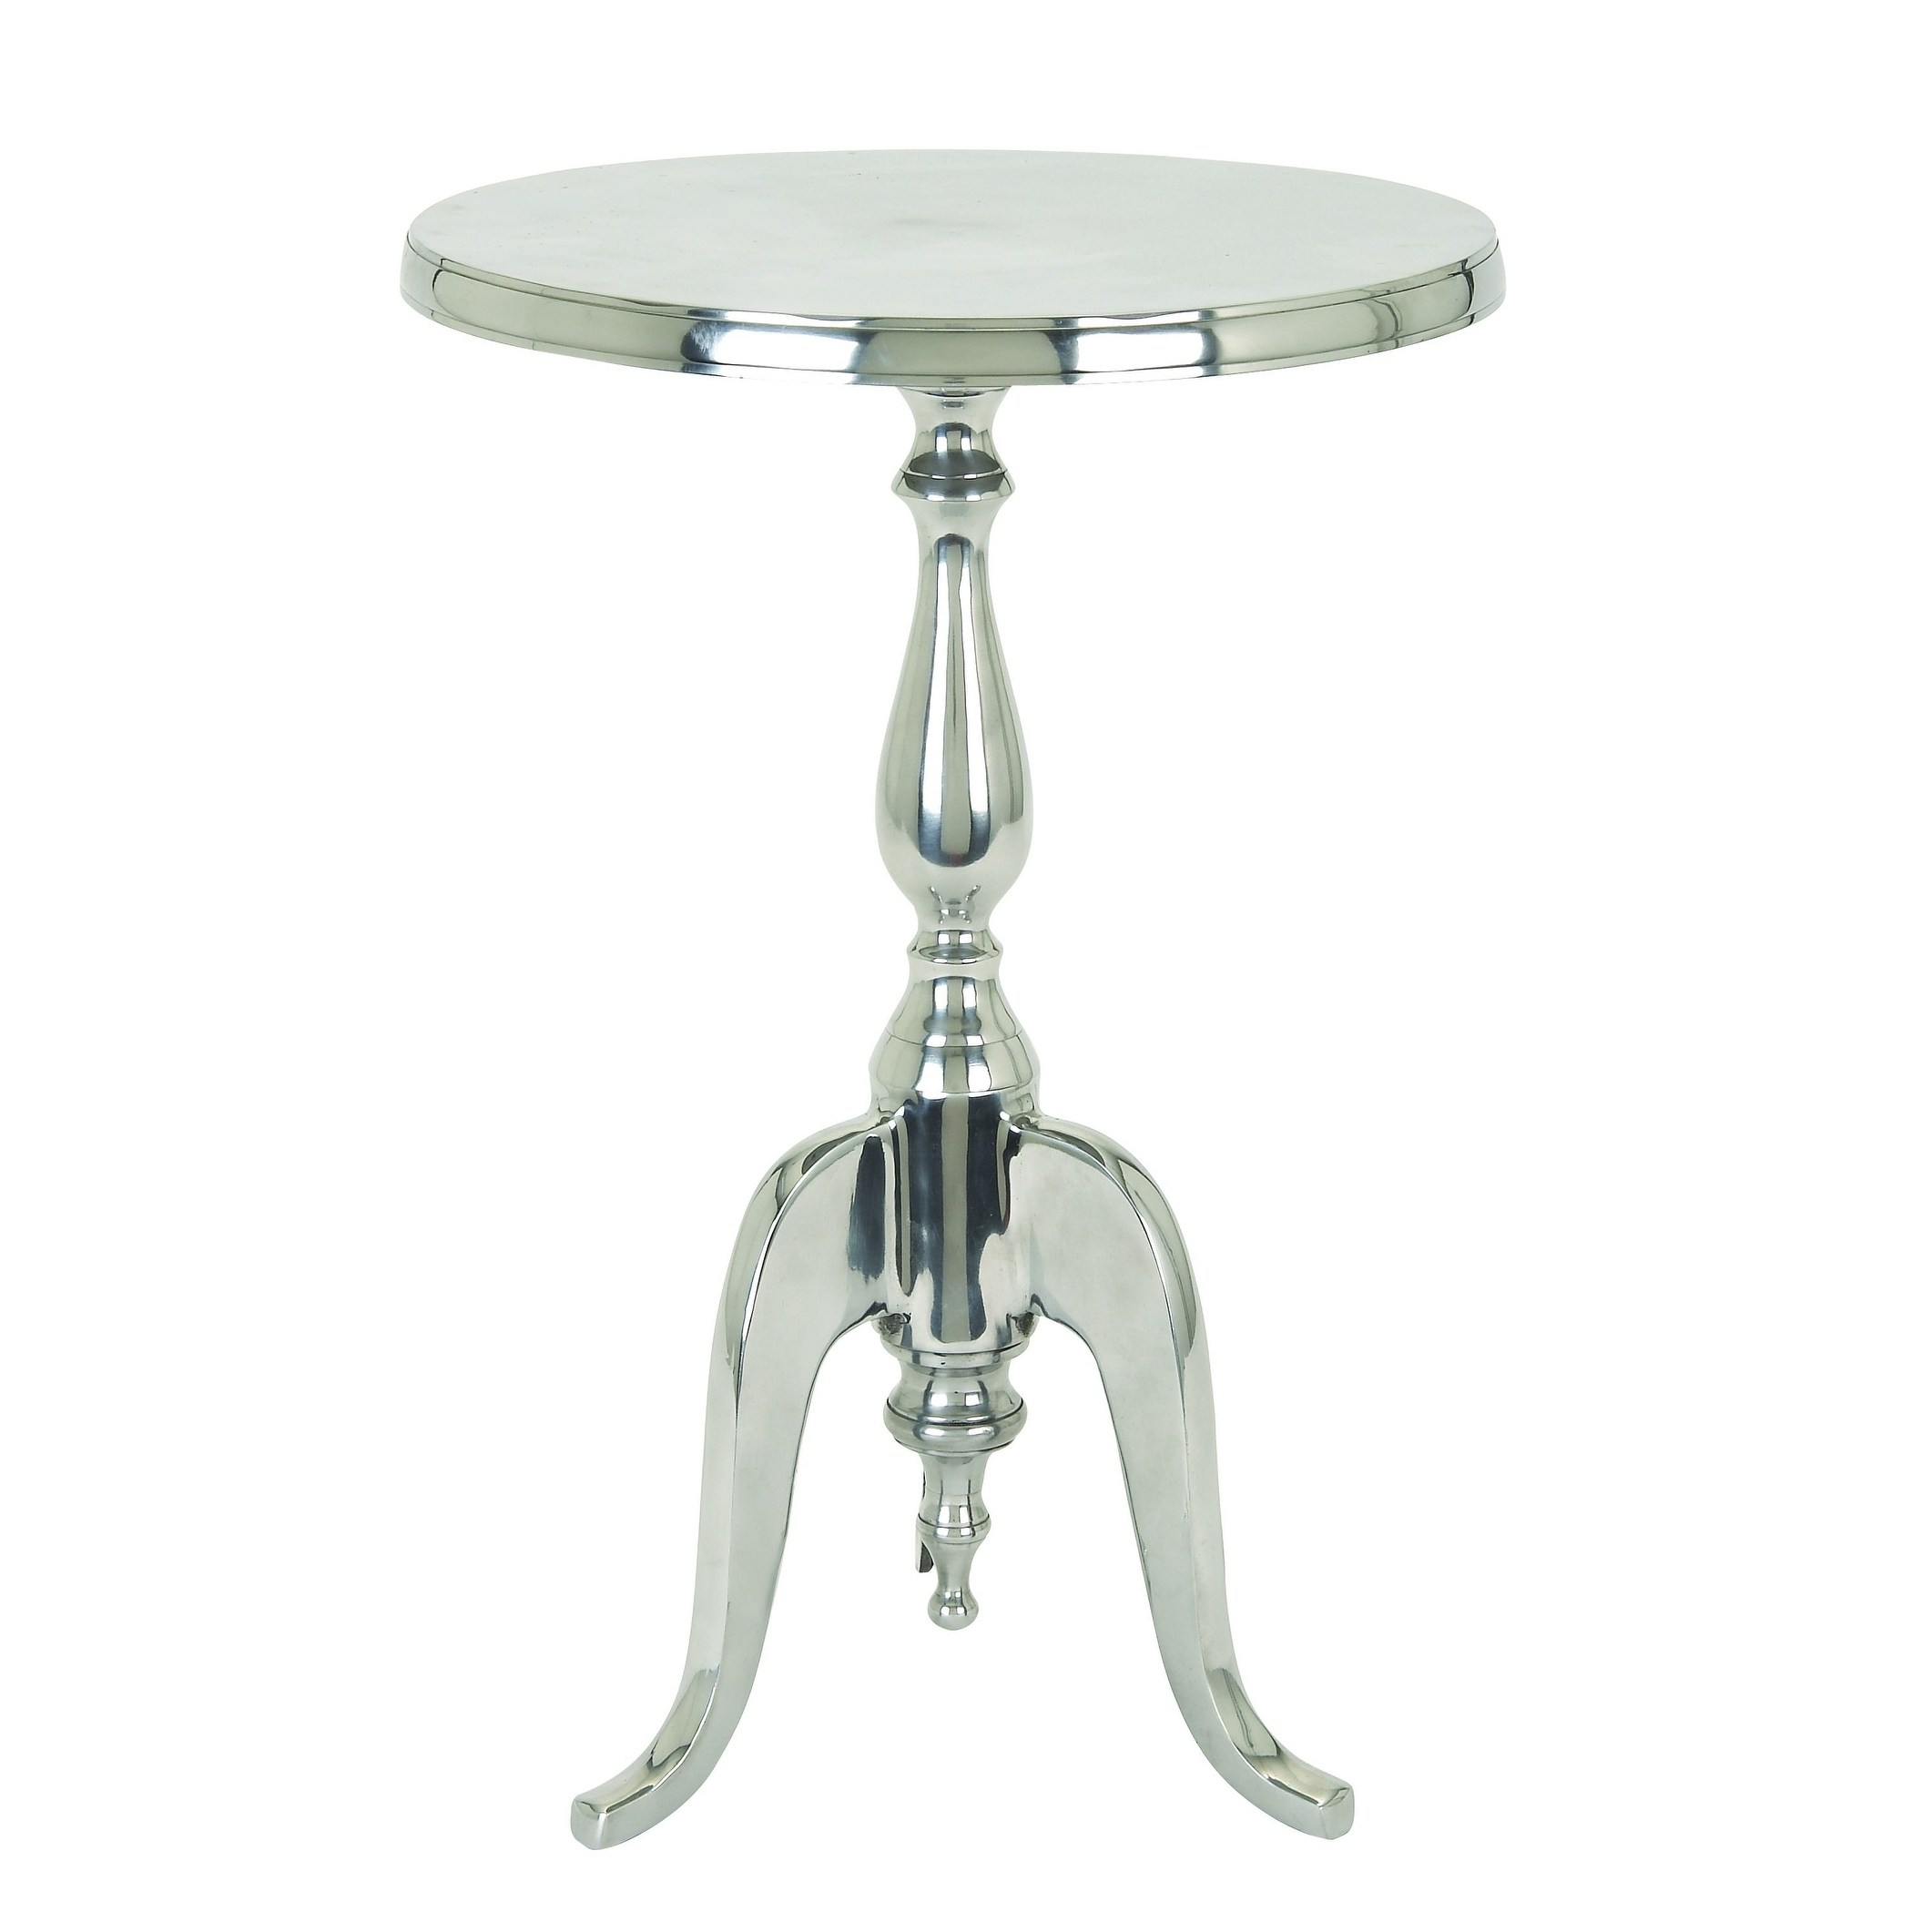 traditional style aluminum accent table with pedestal base silver free shipping today ikea chest drawers glass top patio end tables unique desk lamps outdoor side clearance small